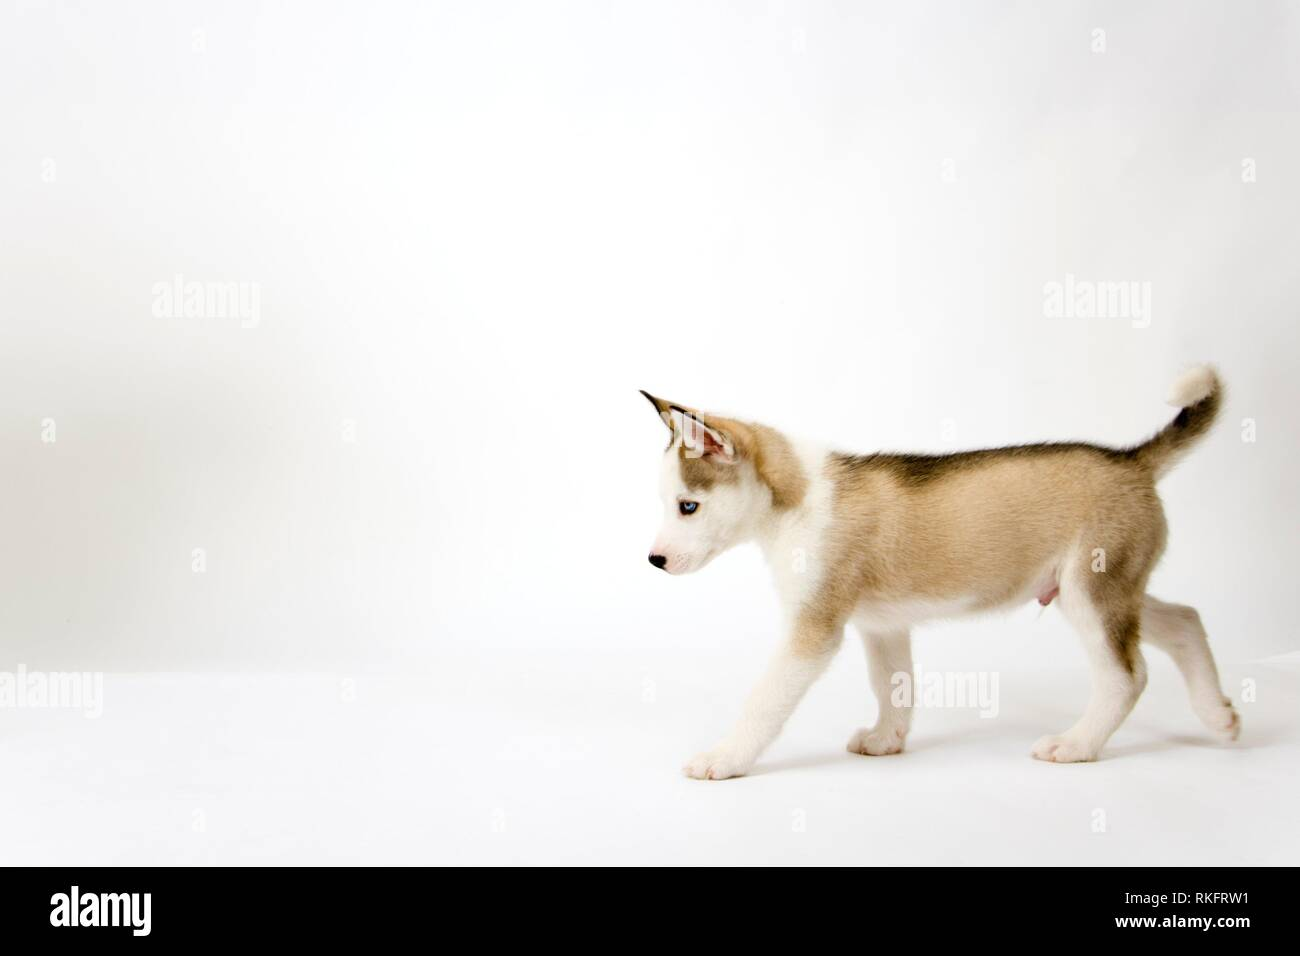 A very cute young Husky dog puppy with piercing blue eyes strides out. - Stock Image